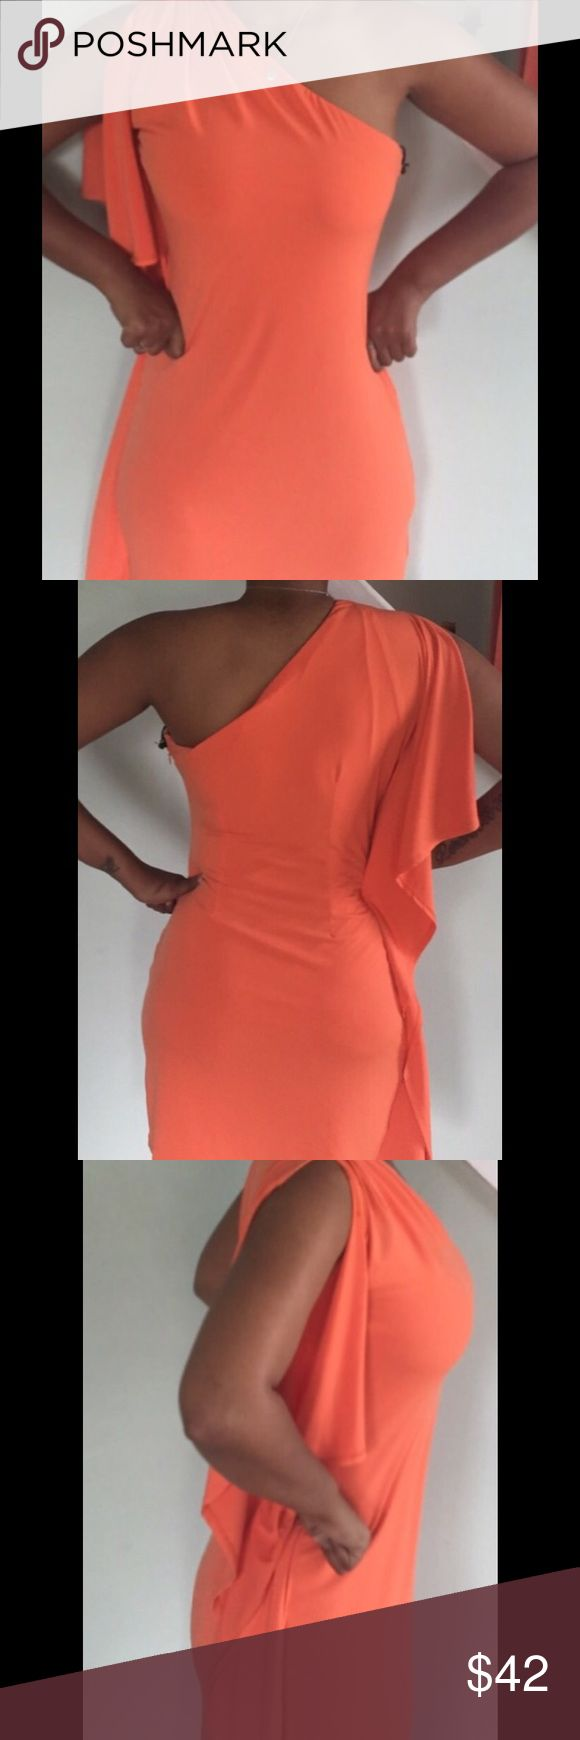 GORGEOUS Calvin Klein Dress! Never Worn Gorgeous Sexy one shoulder bright orange dress! If you are looking to make a statement this summer this is the dress for you! It's beautiful never worn with Tags still on! Model in picture is 5'4': Material polyester. Calvin Klein Collection Dresses One Shoulder